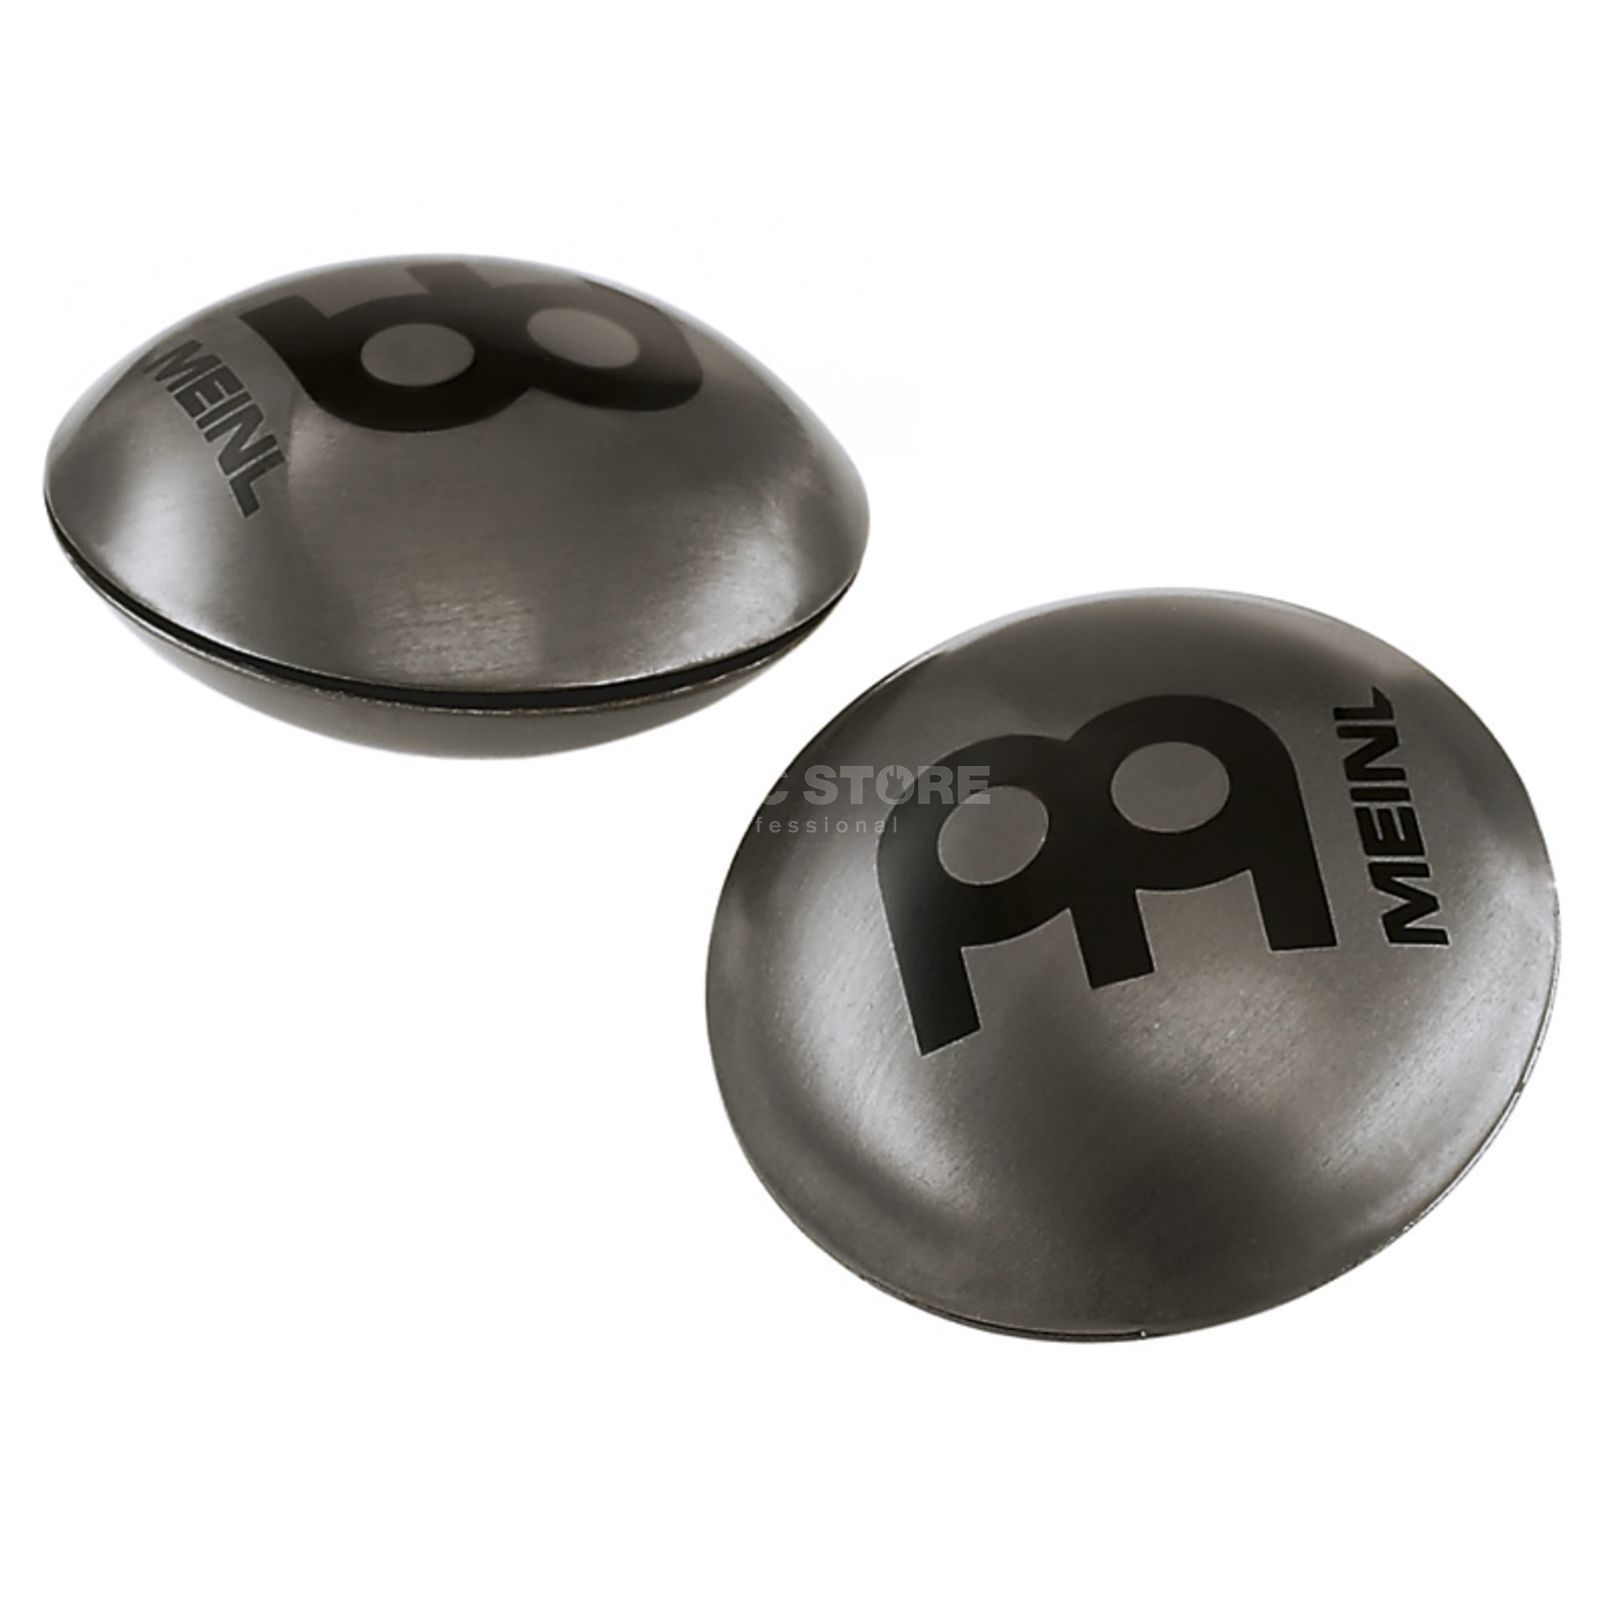 Meinl Clamshell Shaker Set SH22, Black Nickel Produktbild